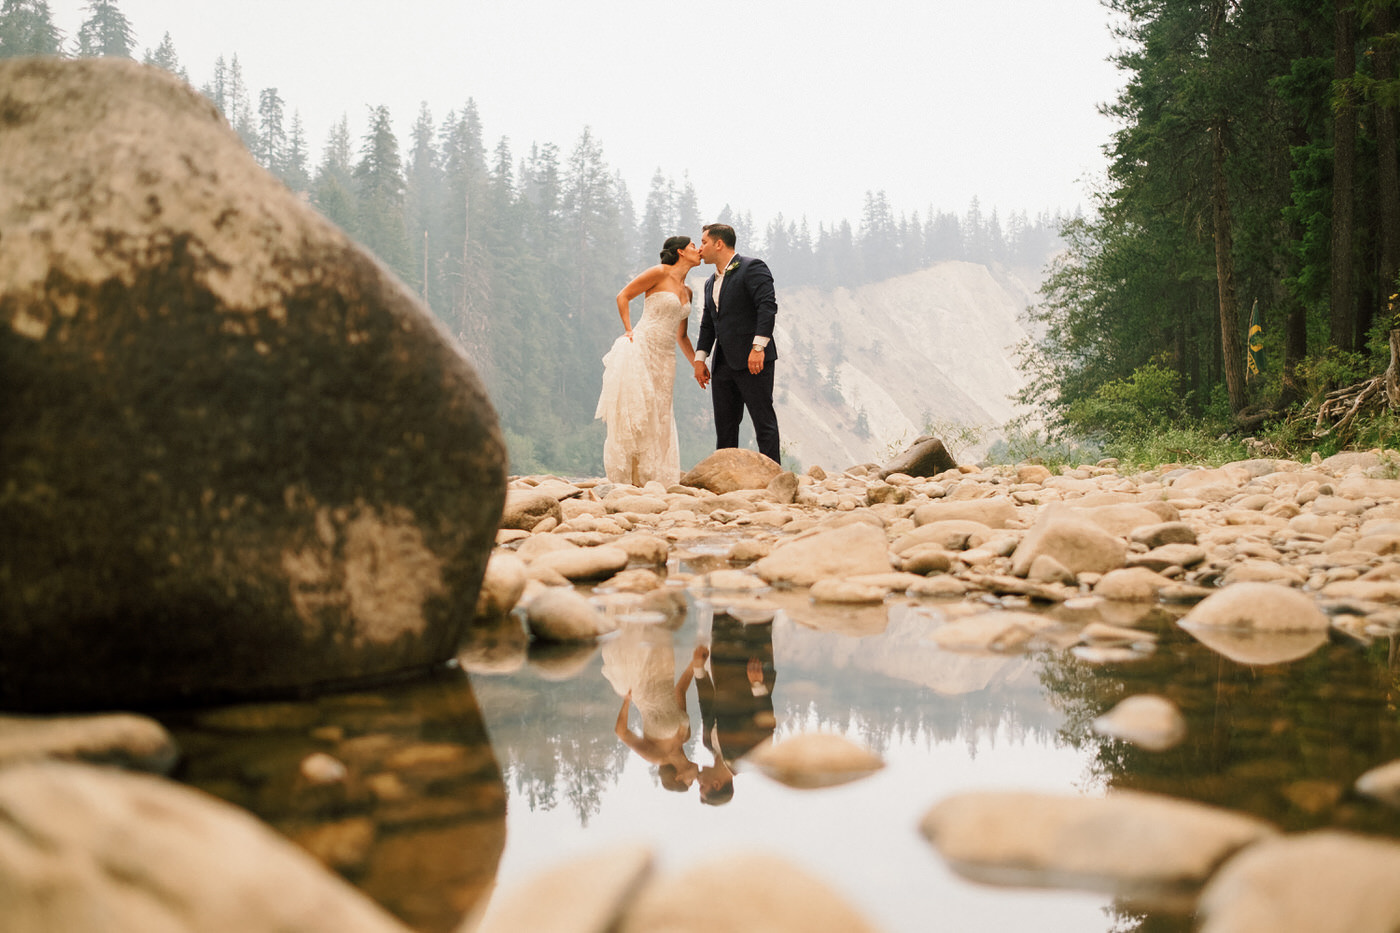 151-pacific-northwest-wedding-photography-by-ryan-flynn.jpg